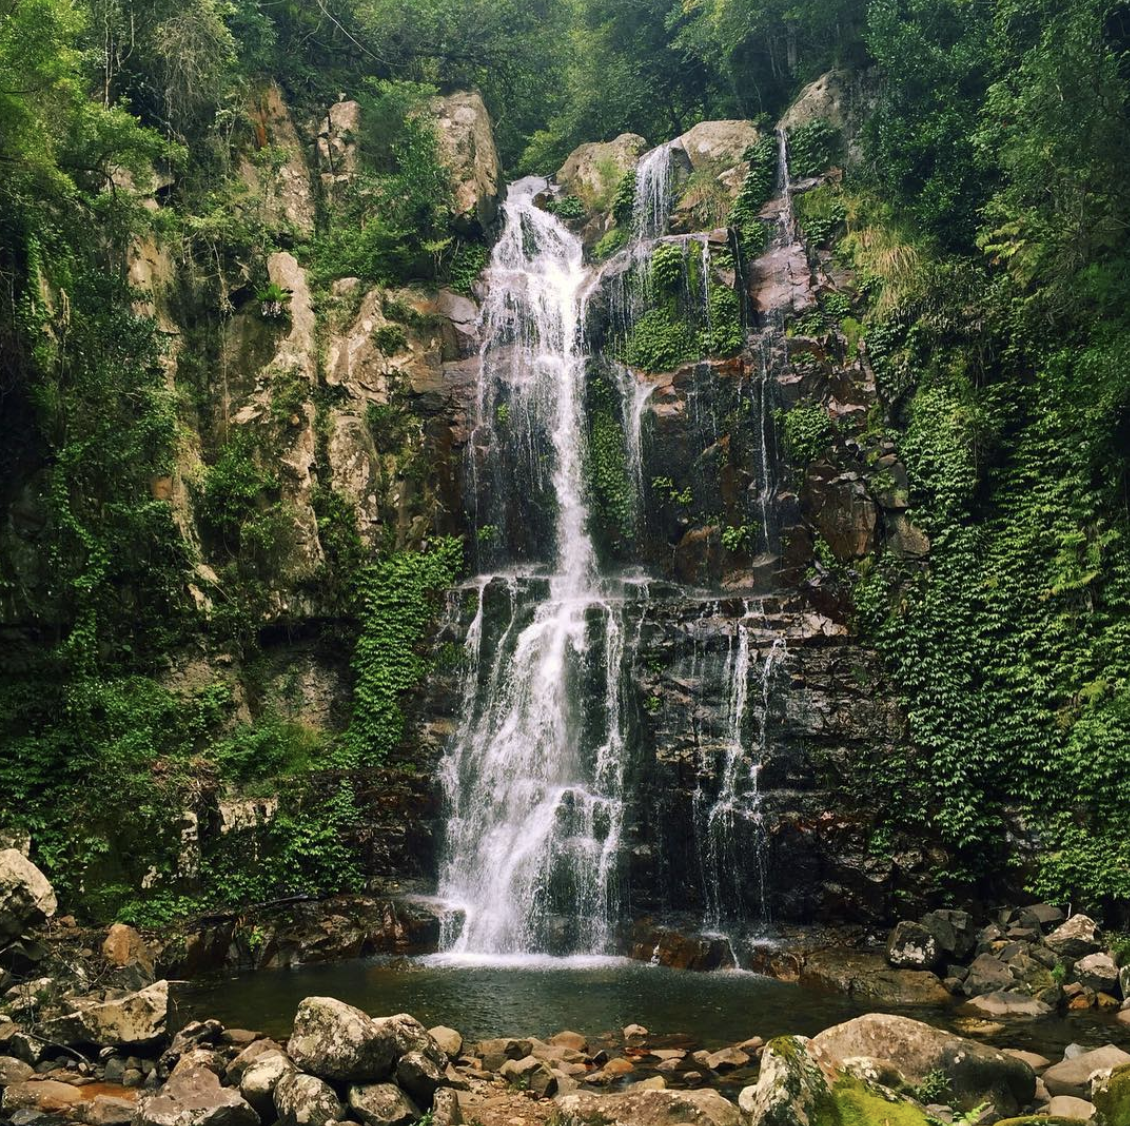 MINNAMURRA WATERFALLS   Discover the beauty of the Minamurra Rainforest. There are walking trails to the waterfalls. You can take The Falls walk and enjoy what the rainforest has to offer.